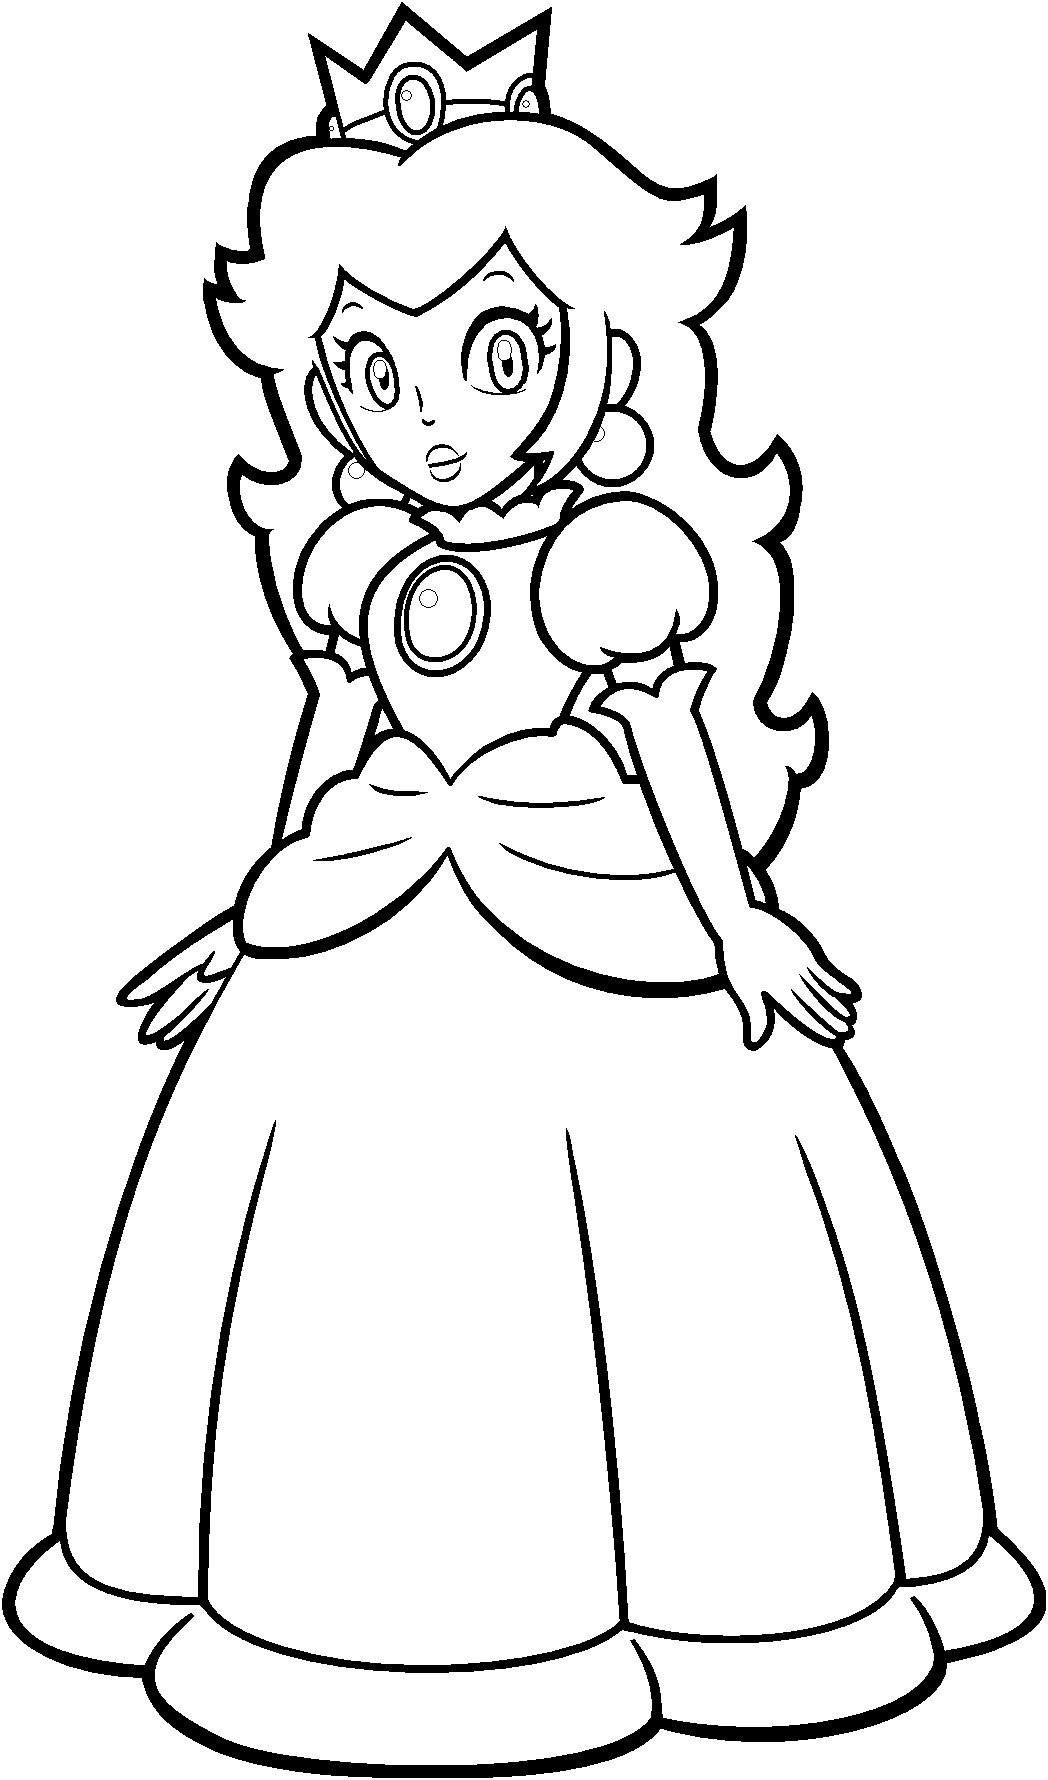 coloring pages princess peach printable princess peach coloring pages for kids cool2bkids coloring peach princess pages